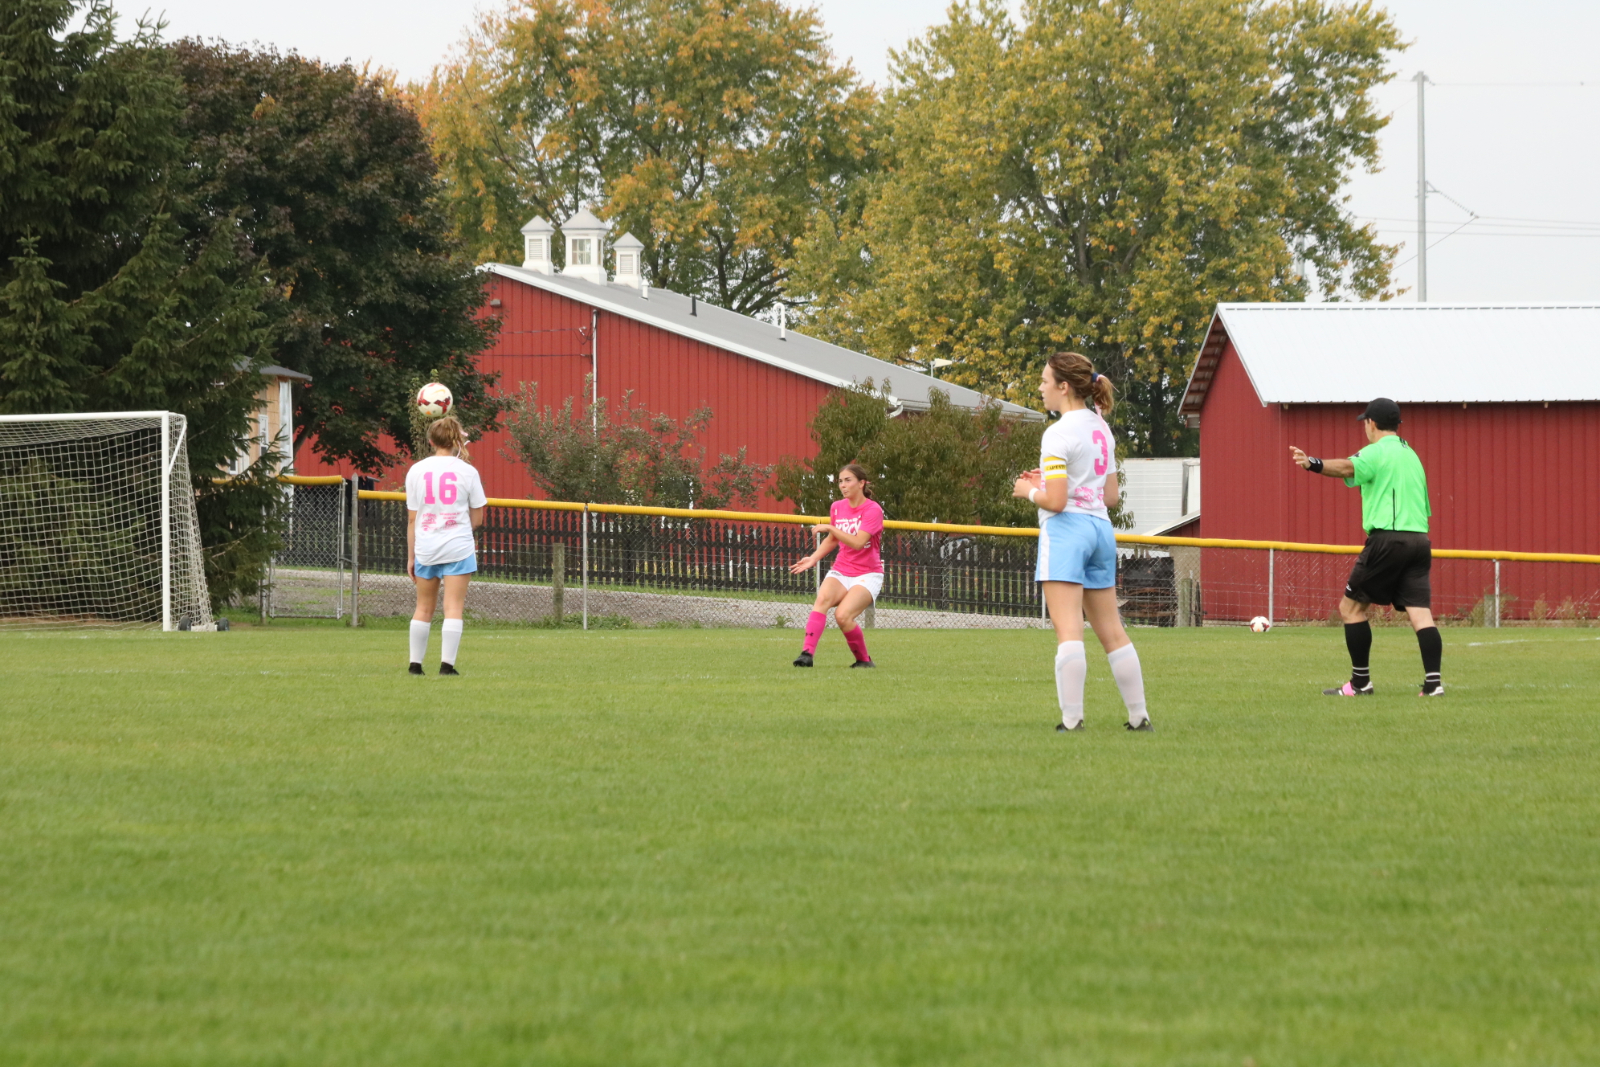 Waynedale Girls Soccer vs. Hillsdale (Kick-for-the Cure Game) 10/10/20